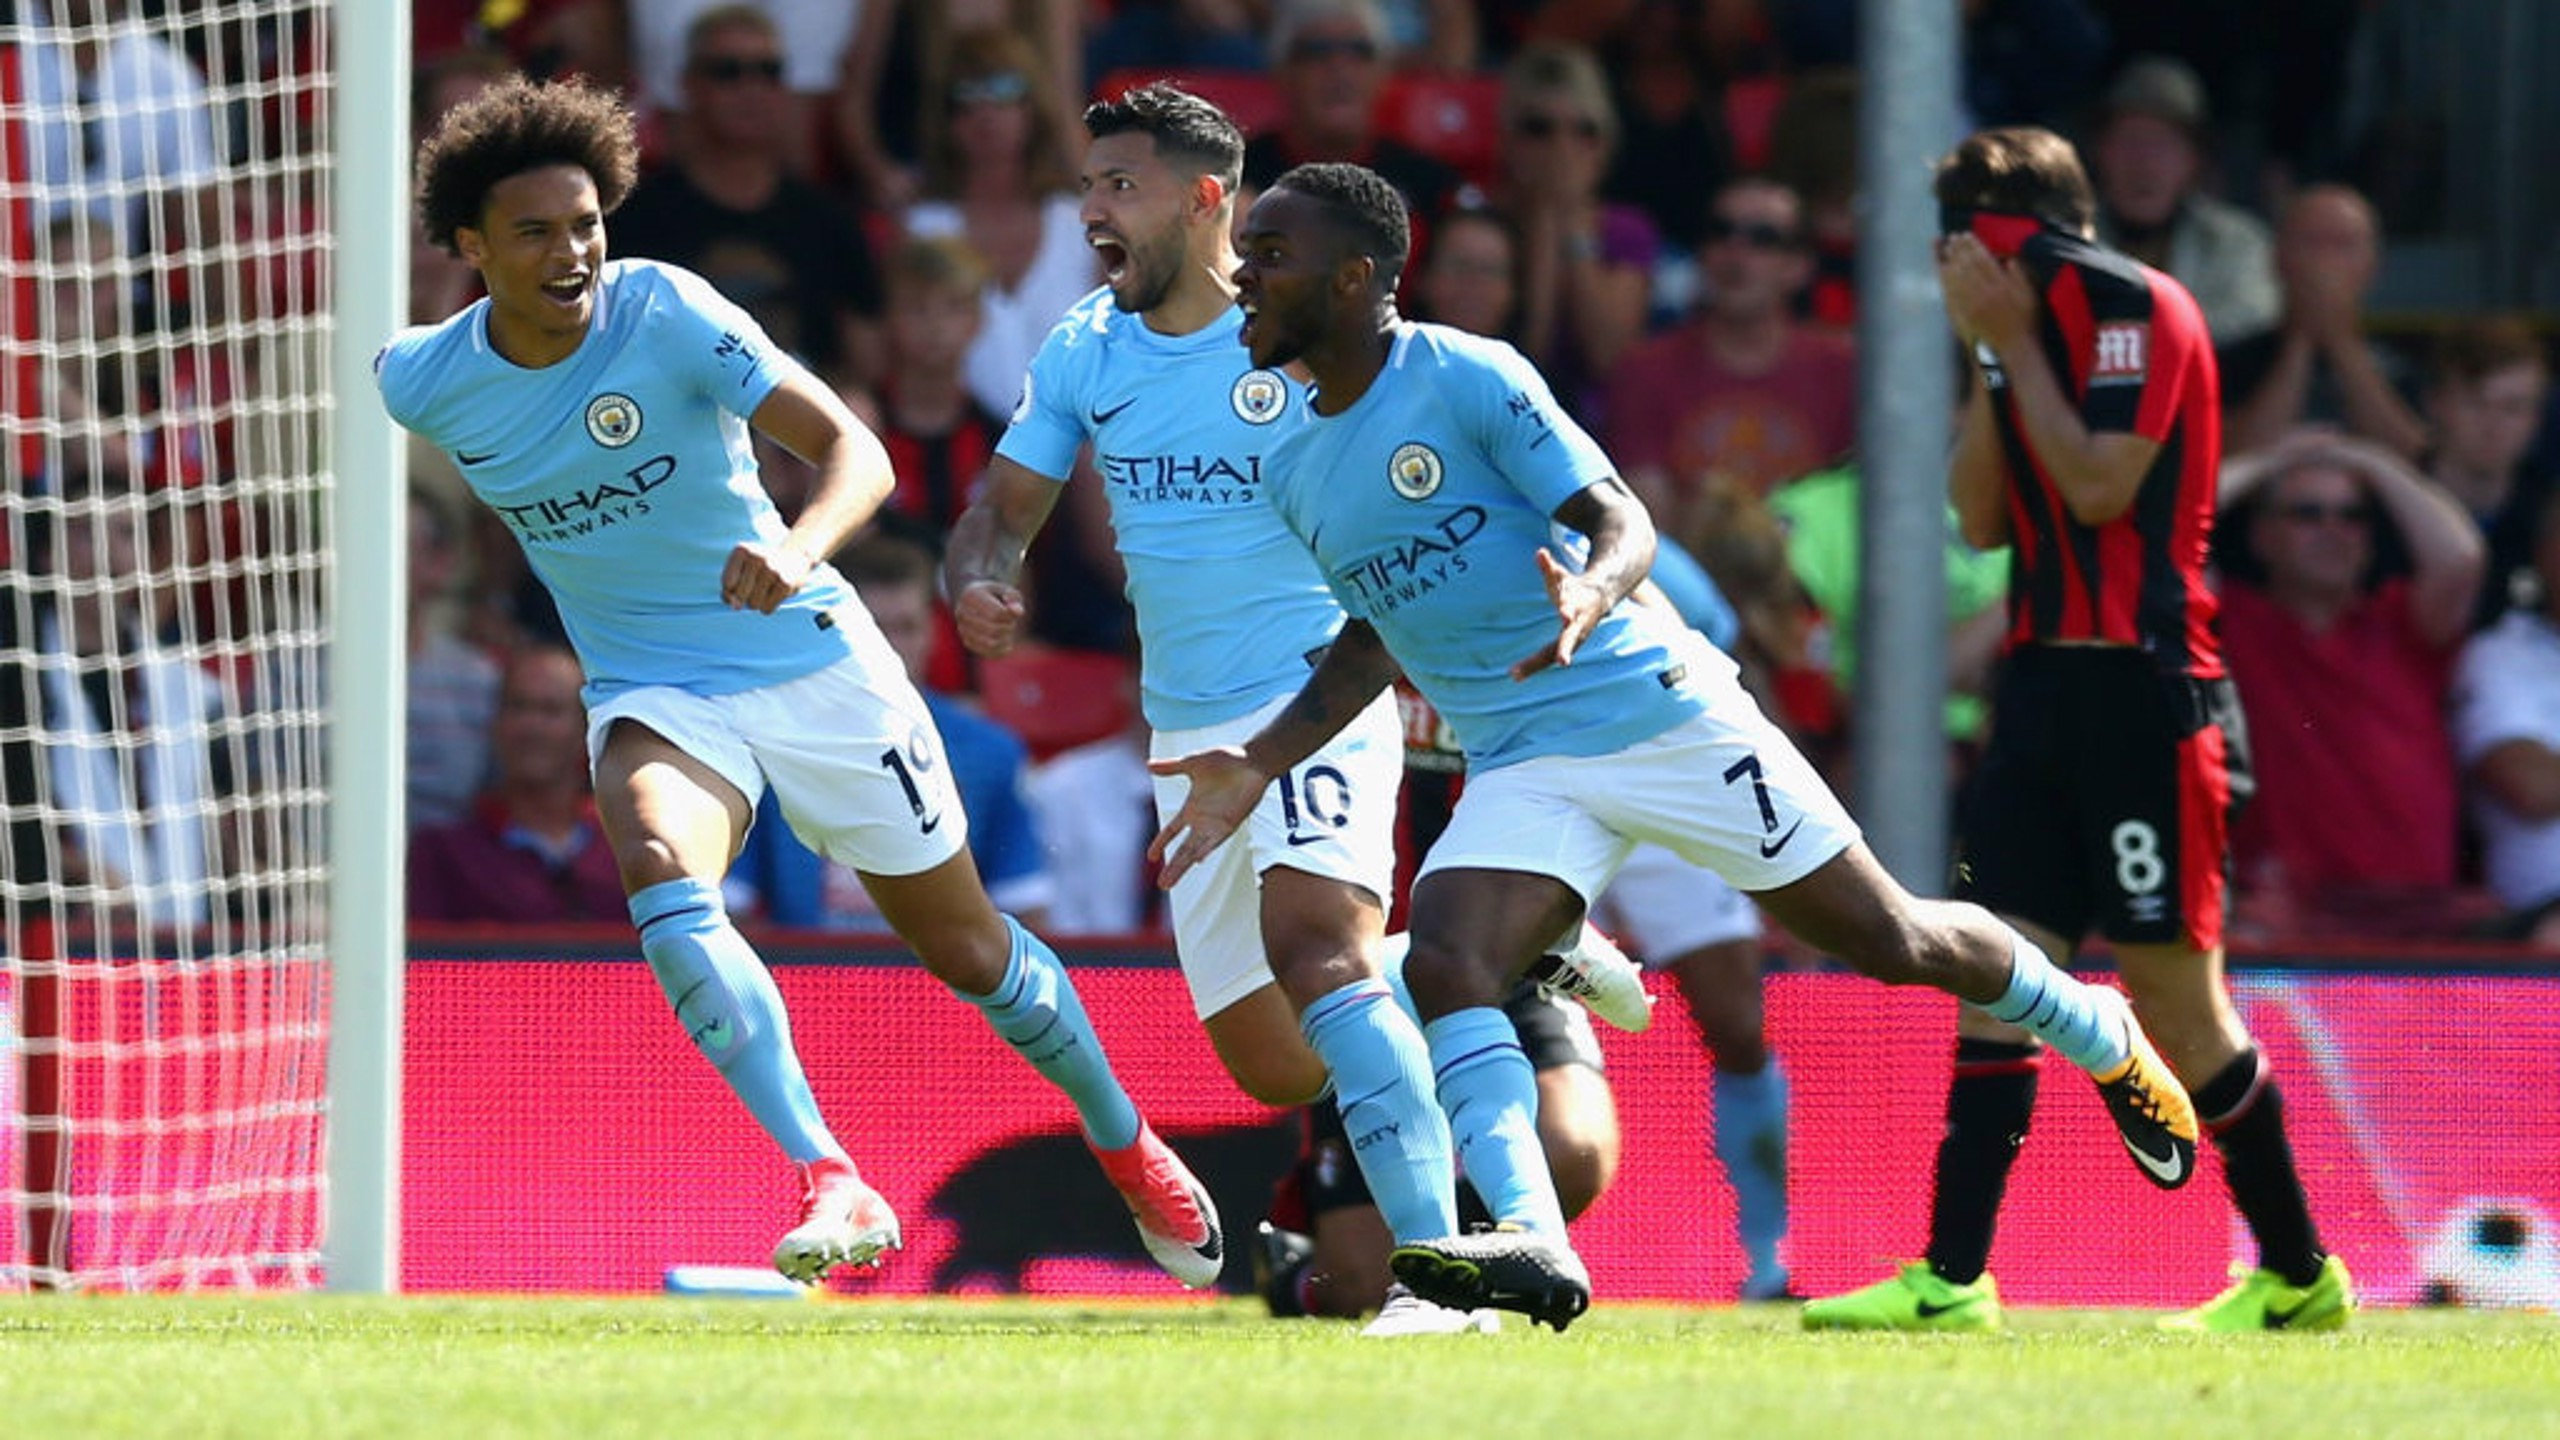 City menang dramatis atas Bournemouth